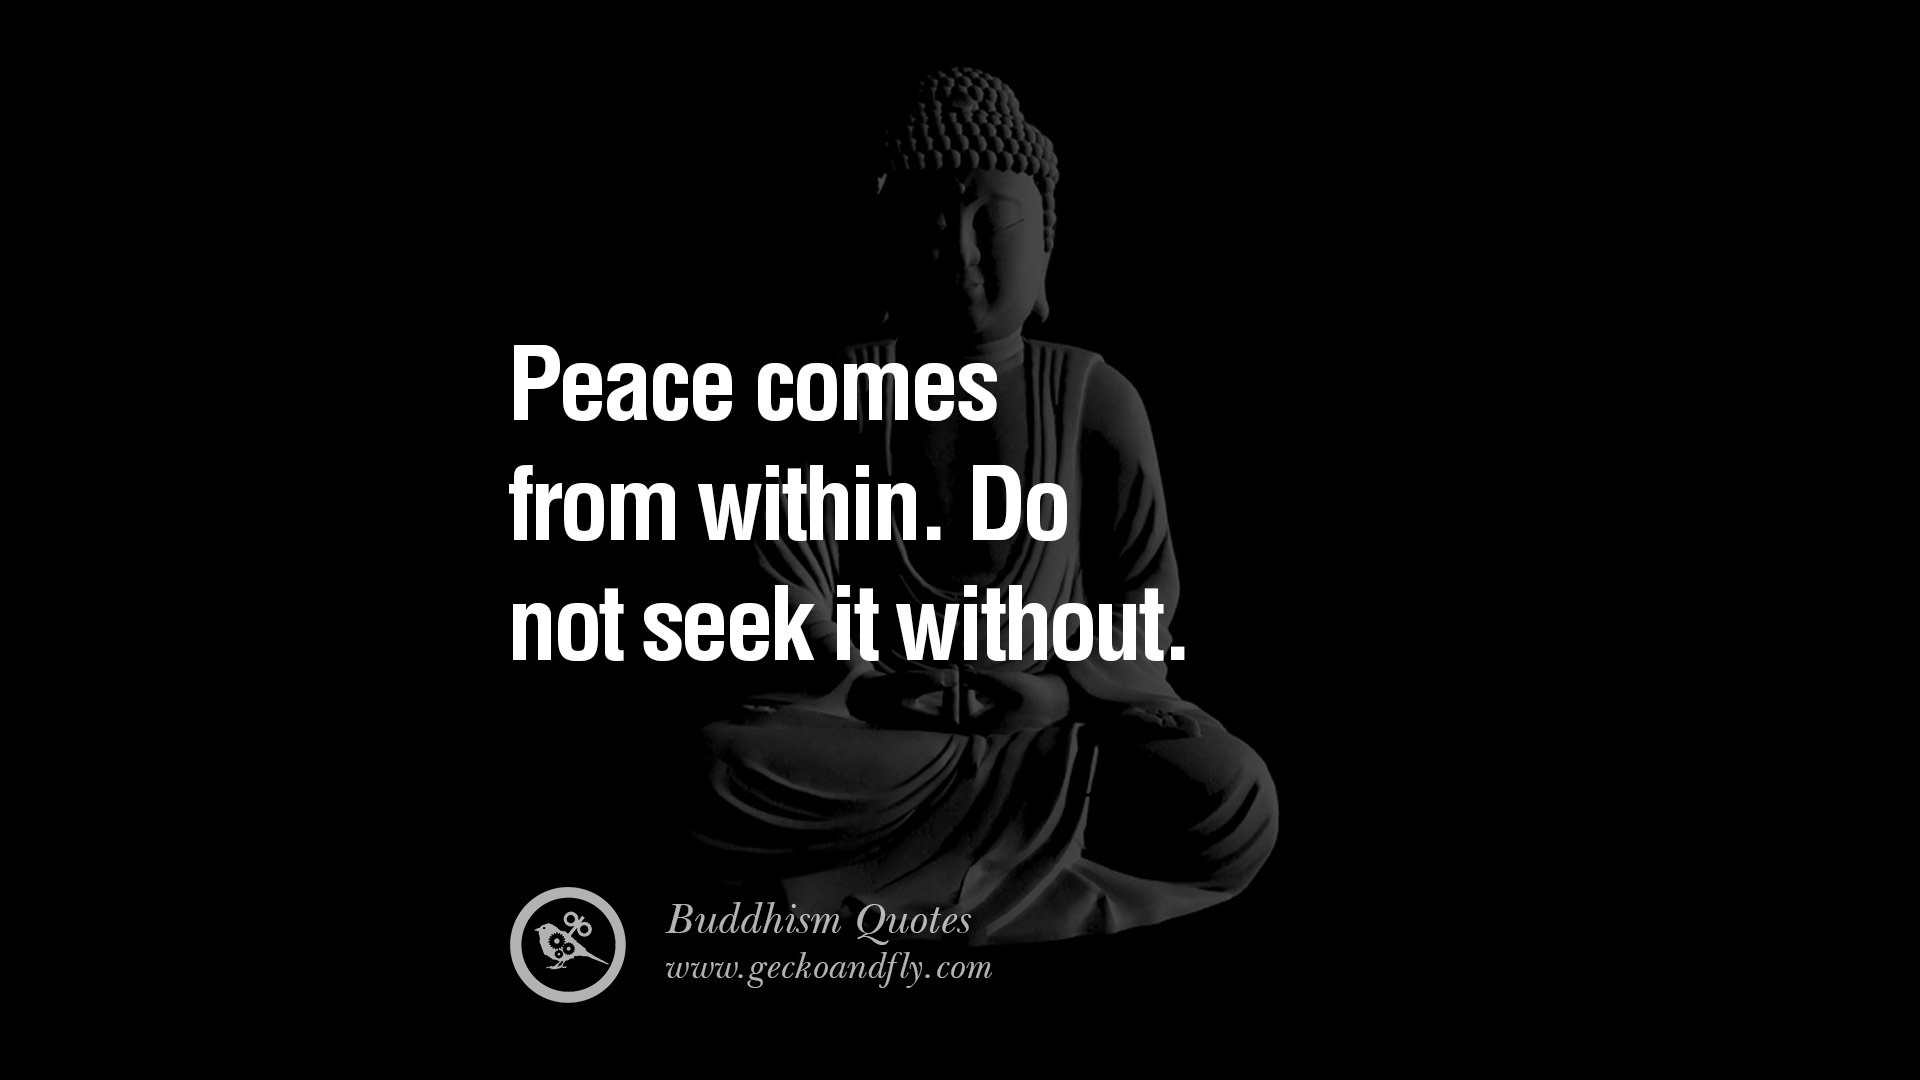 Buddha Quotes Wallpaper 77 images